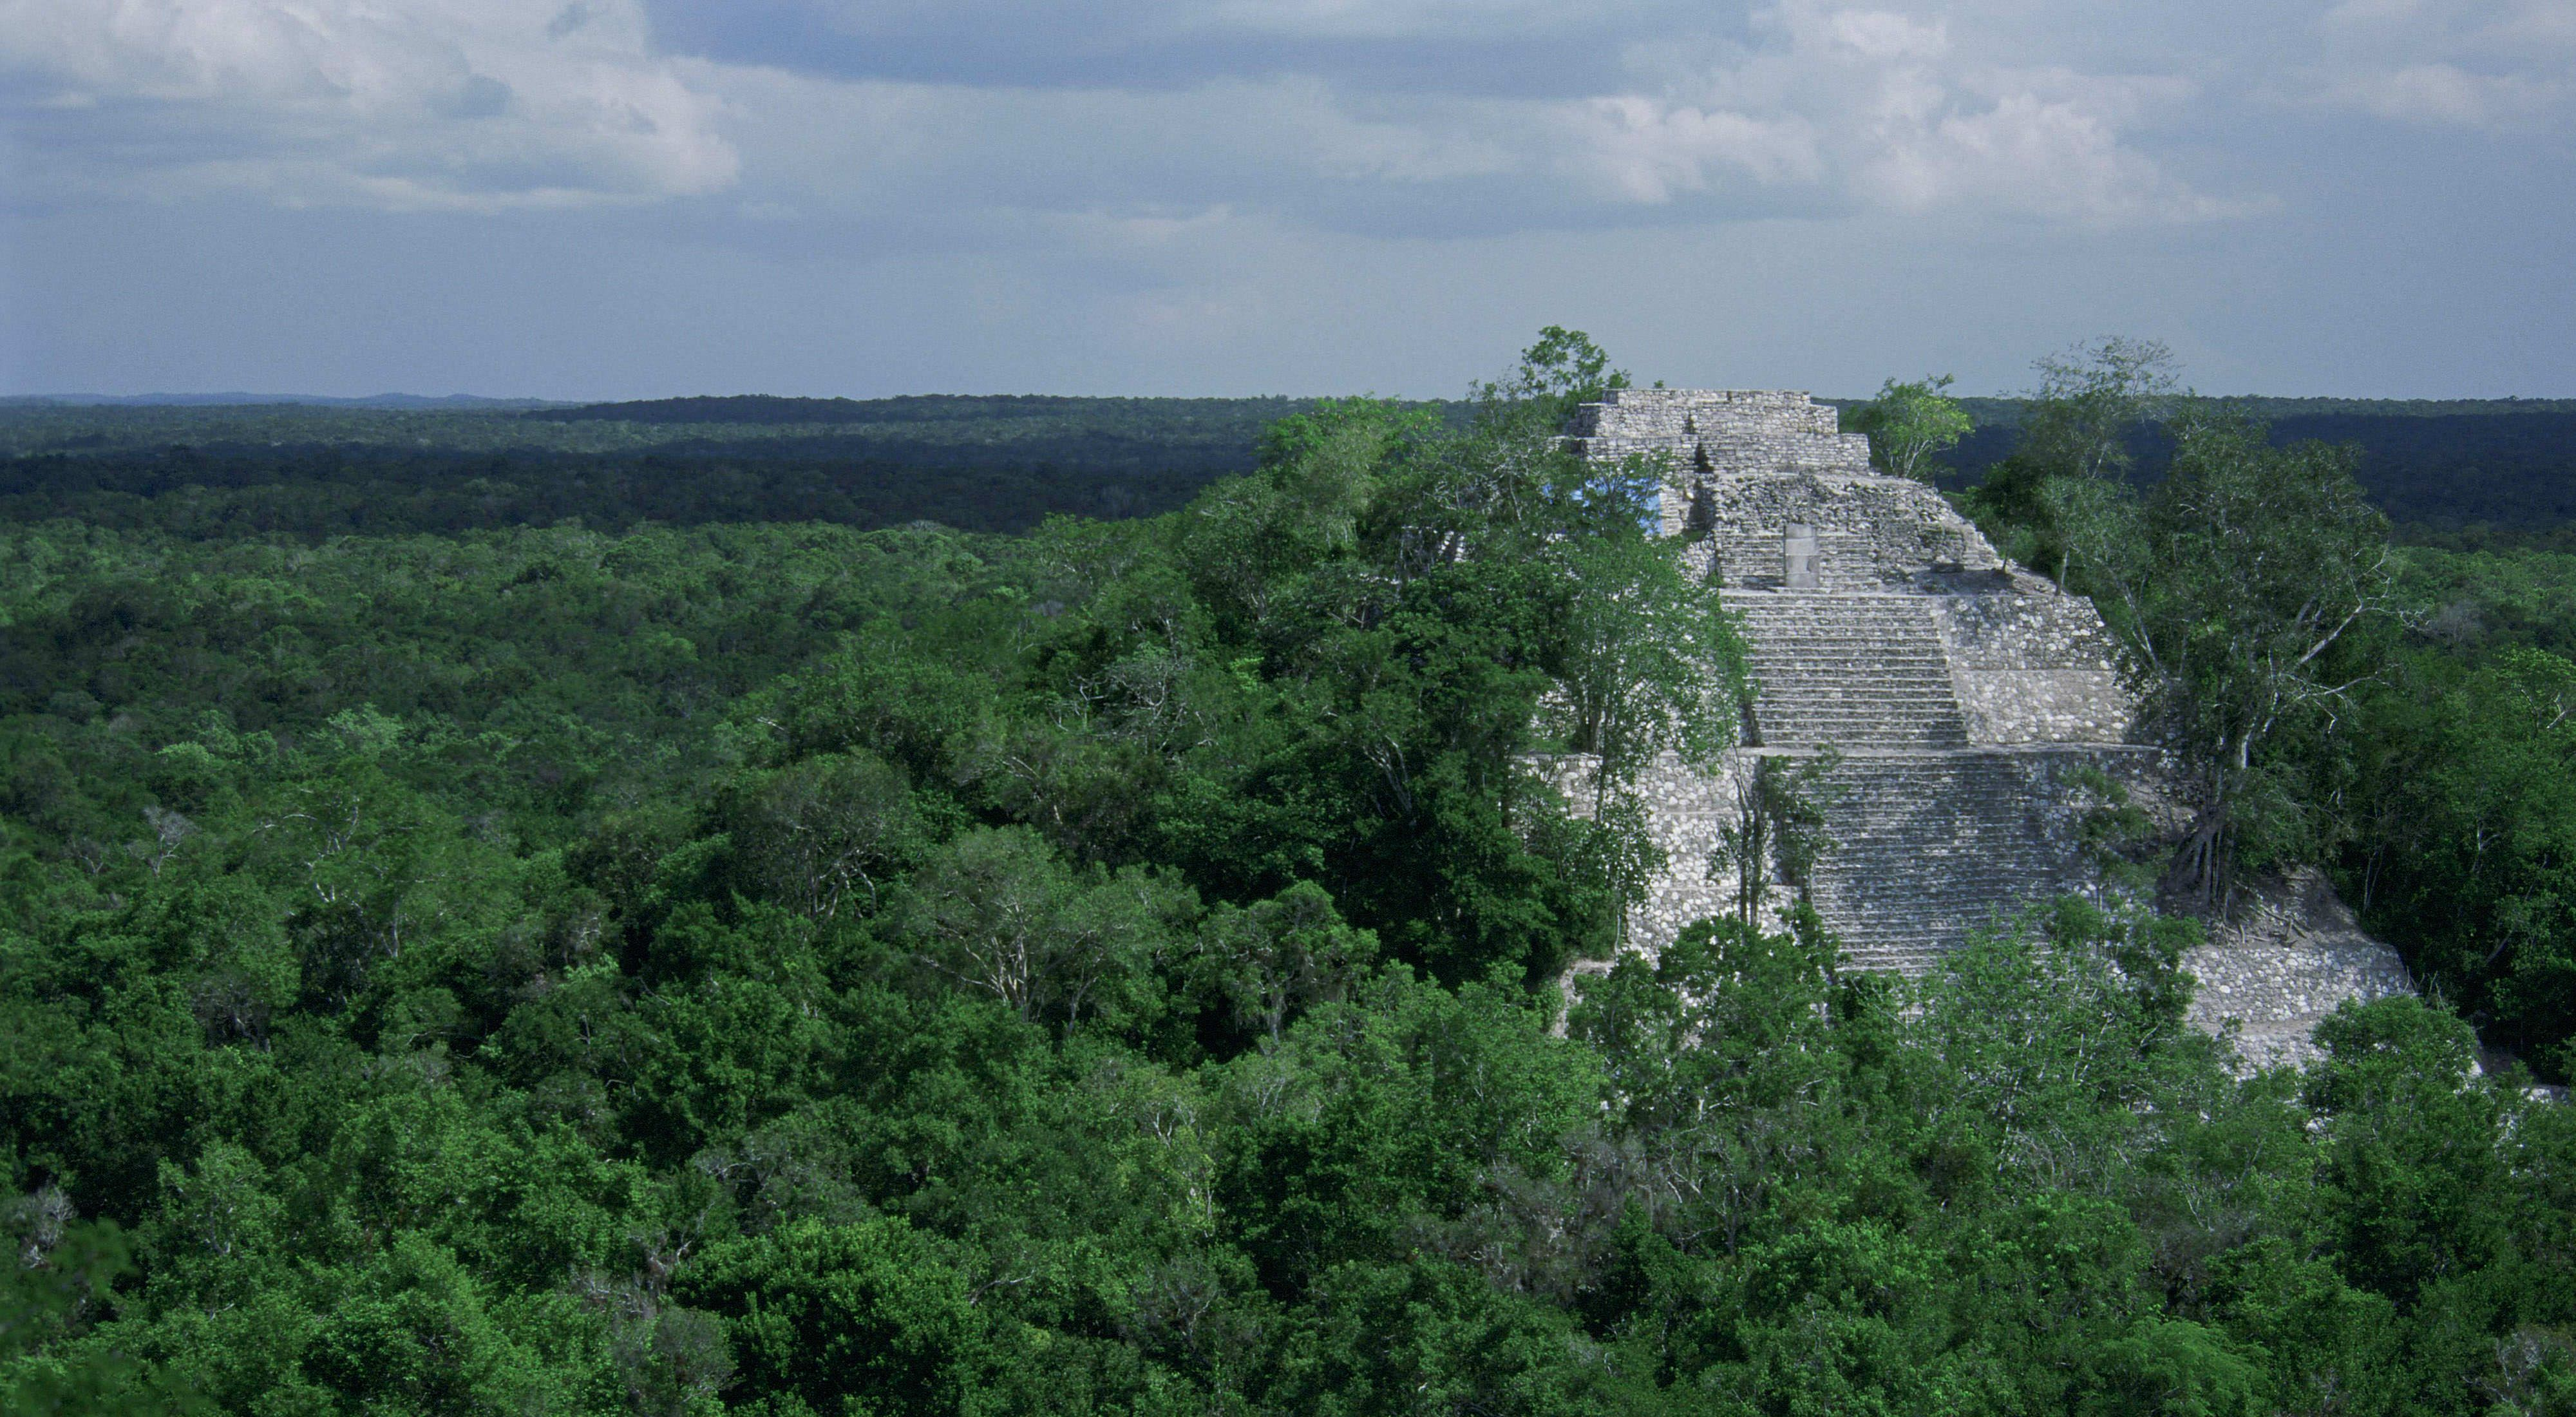 Partially restored Maya temple ruins rise above the Maya forest canopy in Mexico's Calakmul Biosphere Reserve